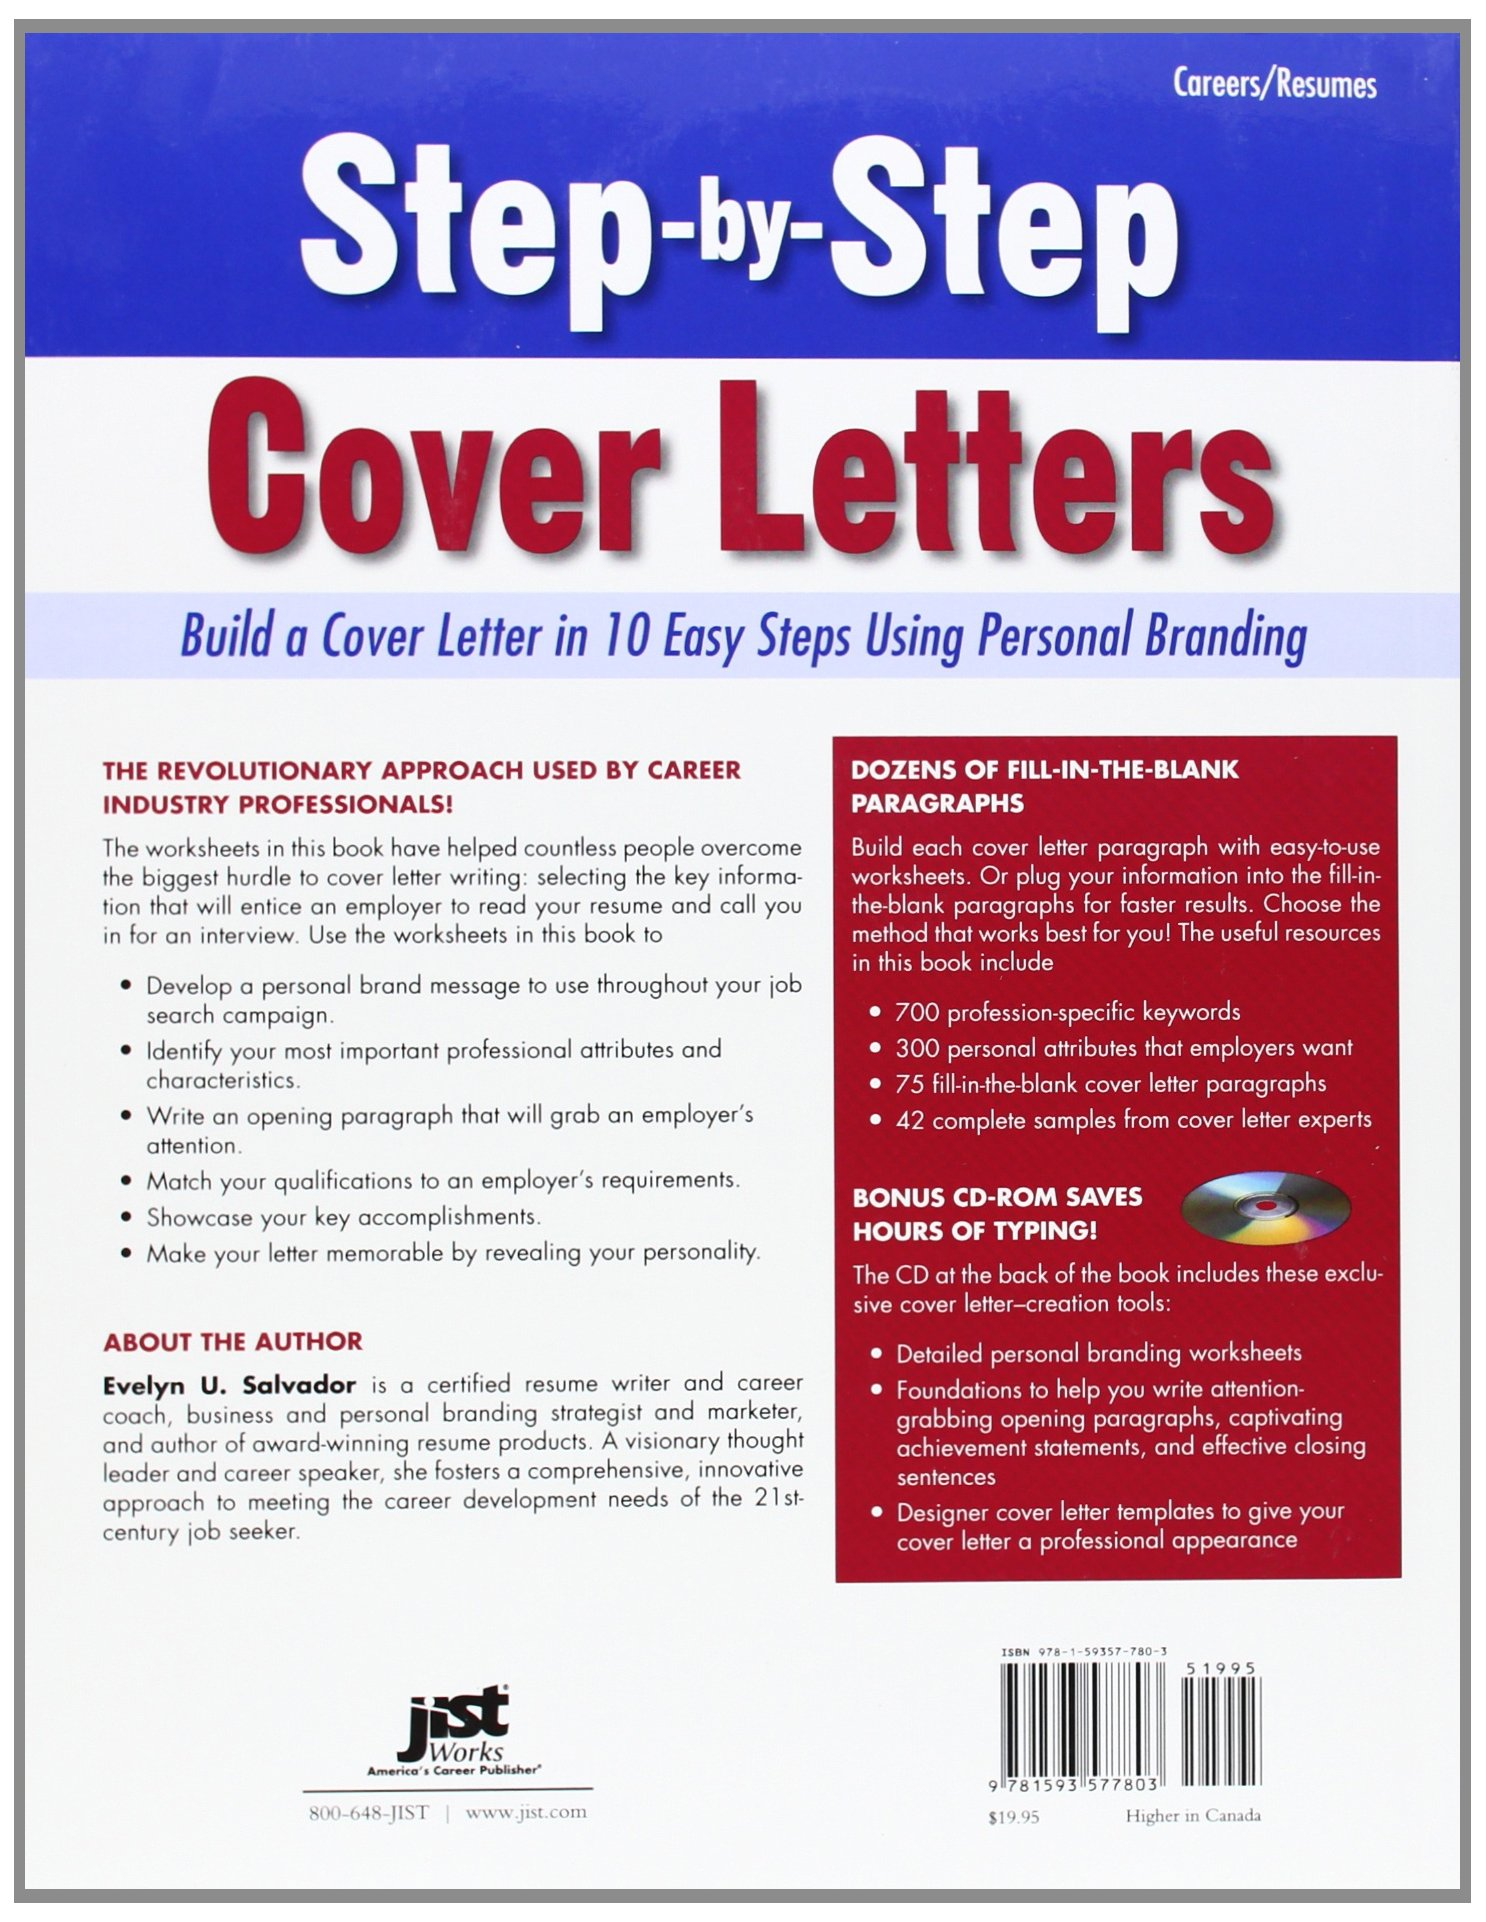 Step By Step Cover Letters: Build A Cover Letter In 10 Easy Steps Using  Personal Branding: Evelyn U Salvador: 9781593577803: Amazon.com: Books